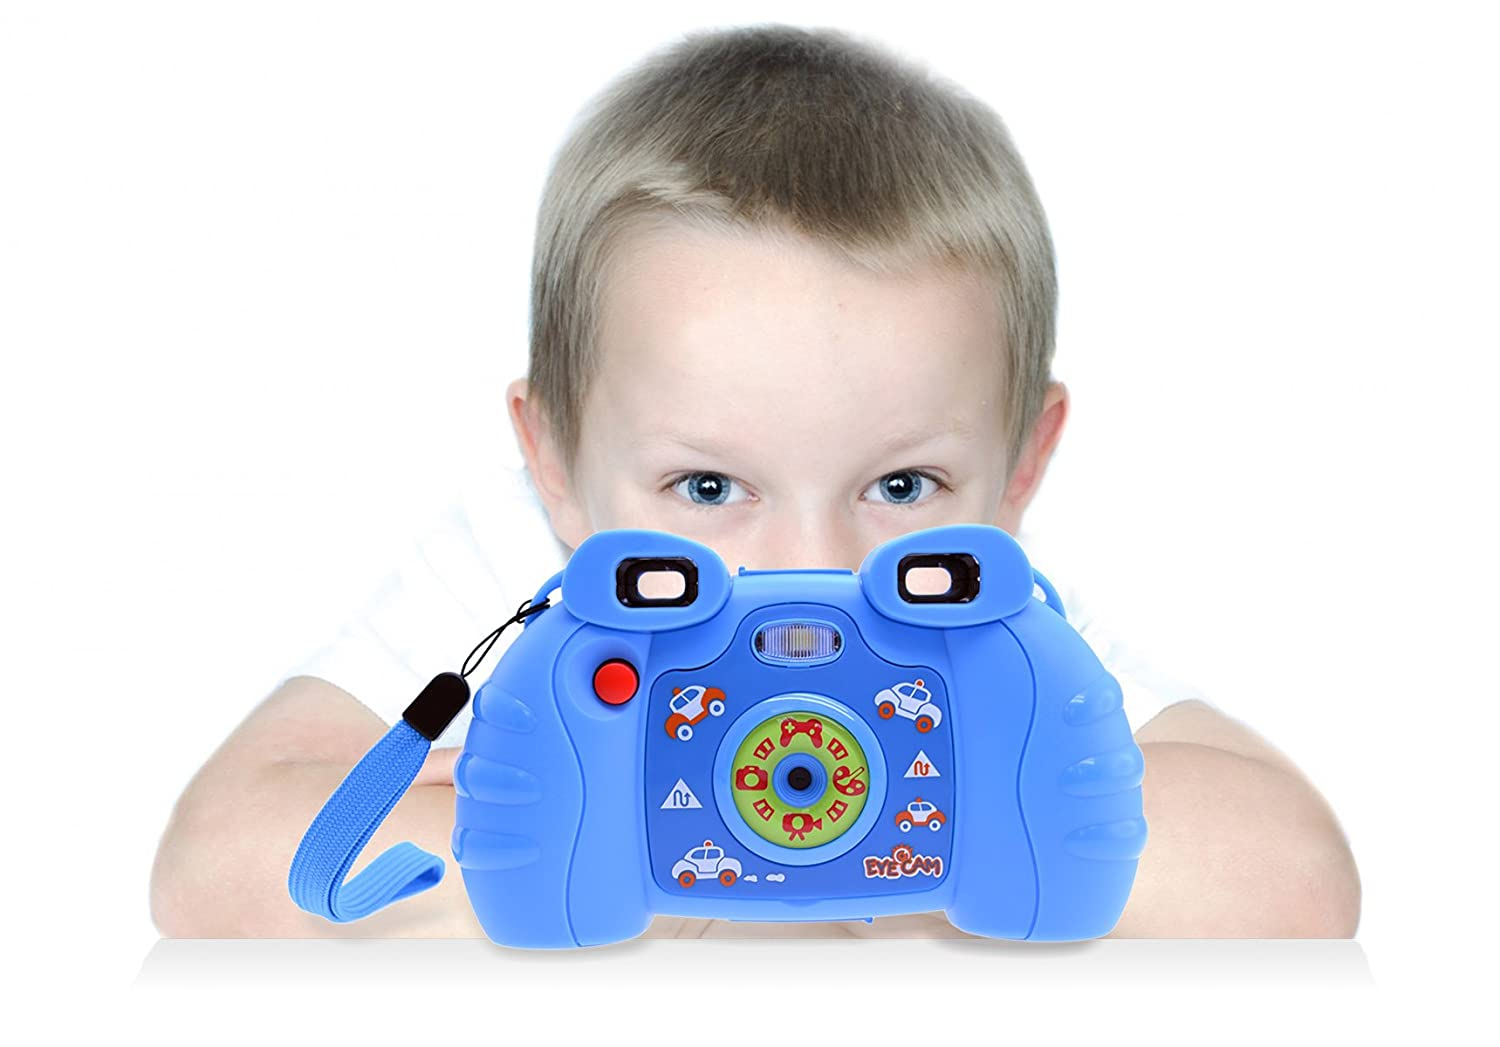 Kids Toys Game Camera for Girls Boys, Discovery Toy Games Smart Digital Photo Kid, Friendly Childs Play Video Cameras for Age 6 8 Years Childrens Toddler iCore